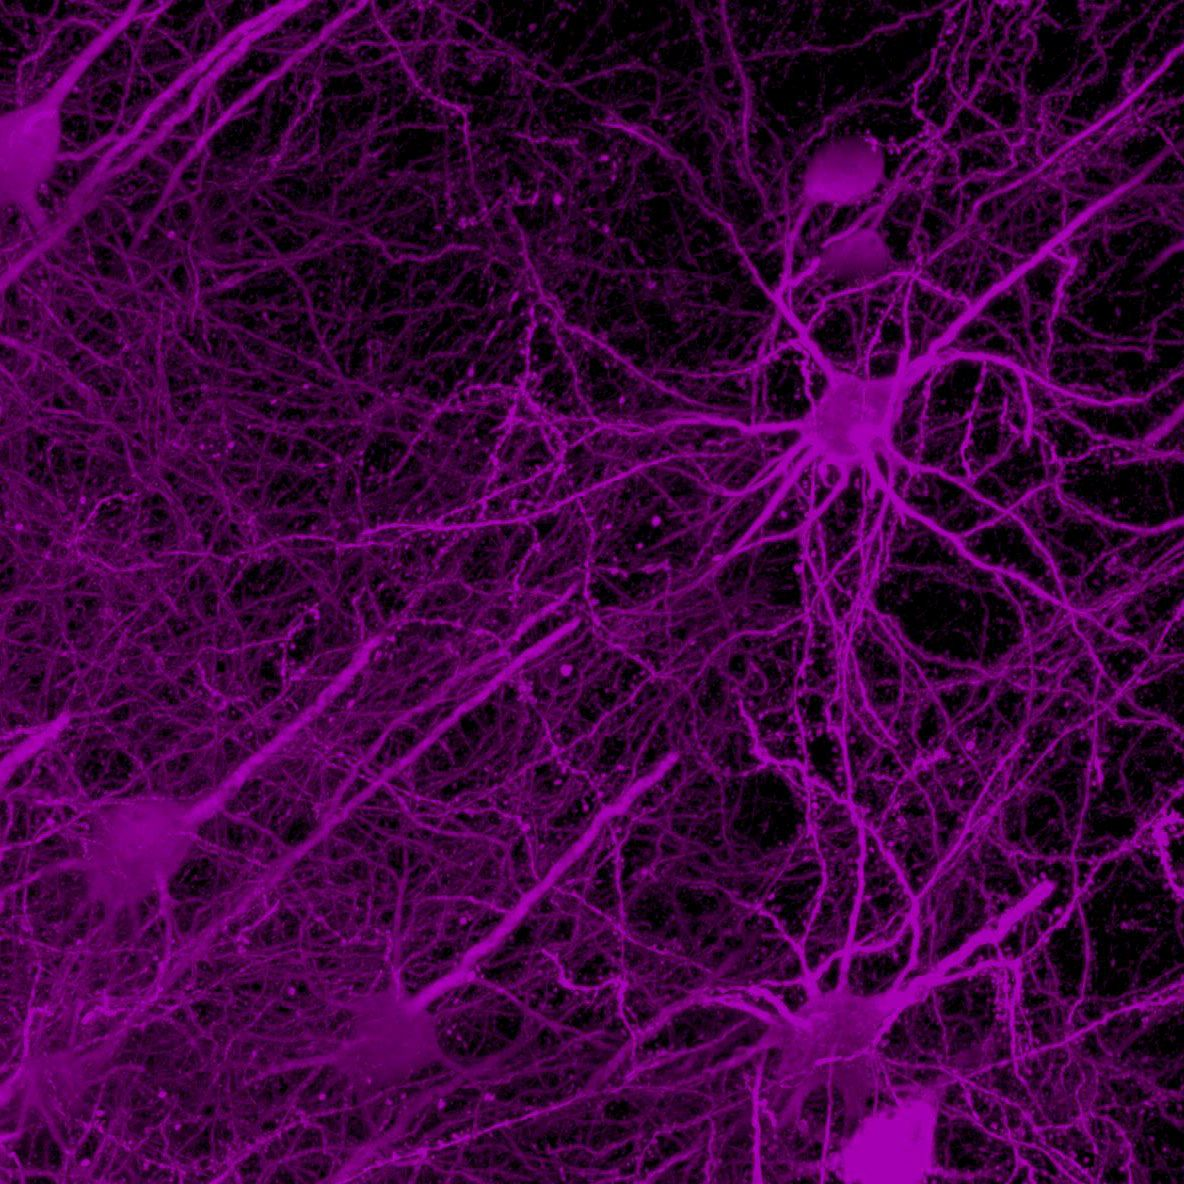 Neurons in a key circuit